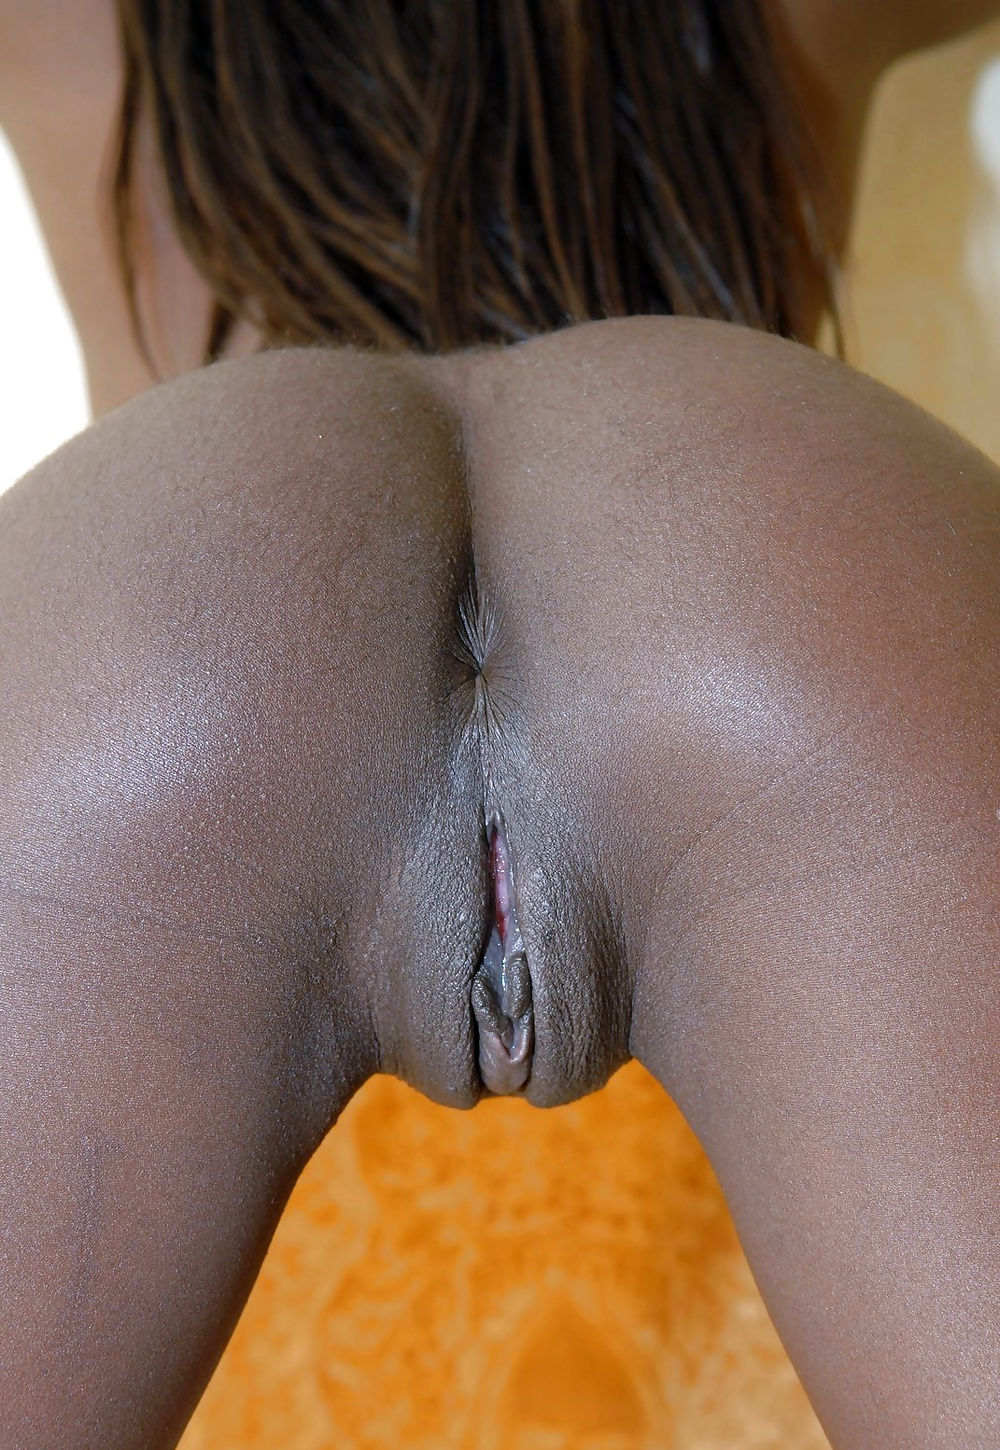 Ebony big black pussy vulva with long labia nude girls pictures